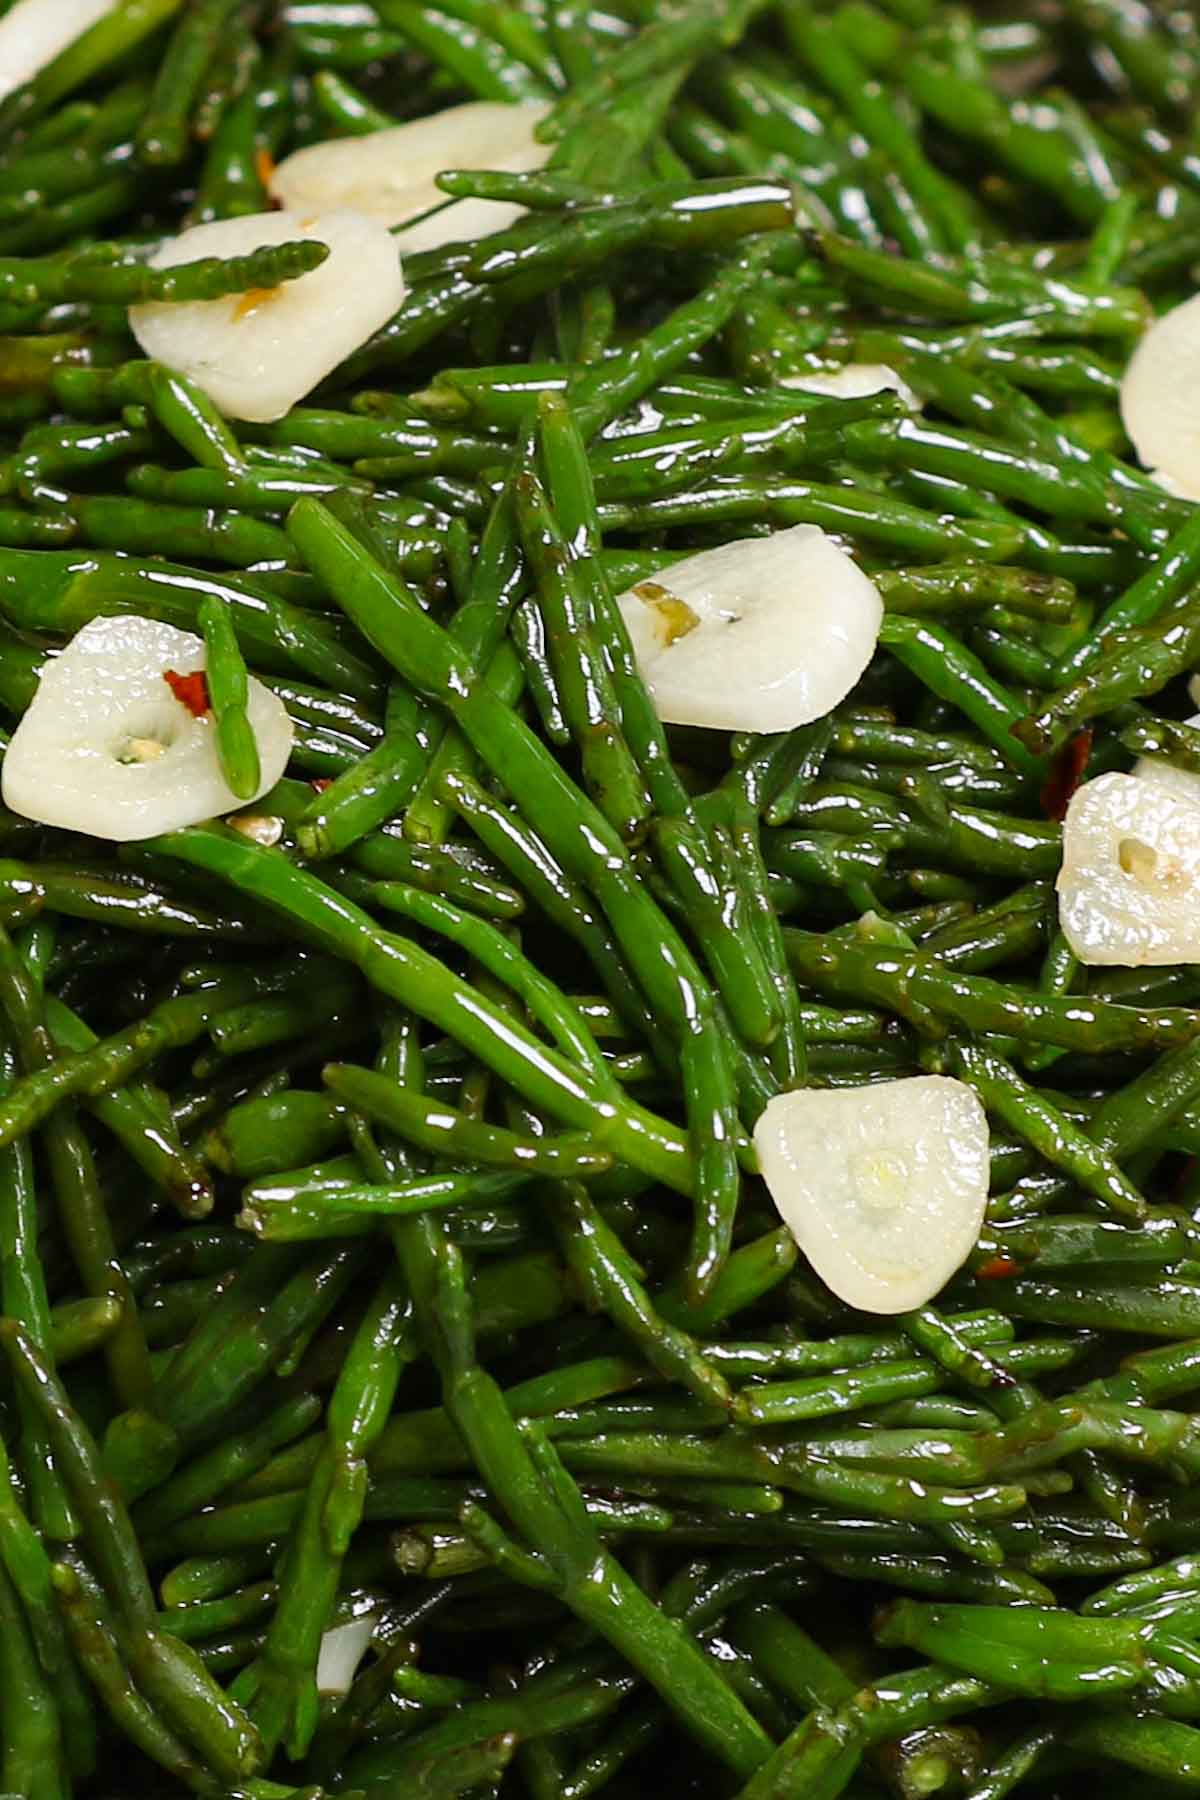 Sauteed sea beans with garlic and red pepper flakes